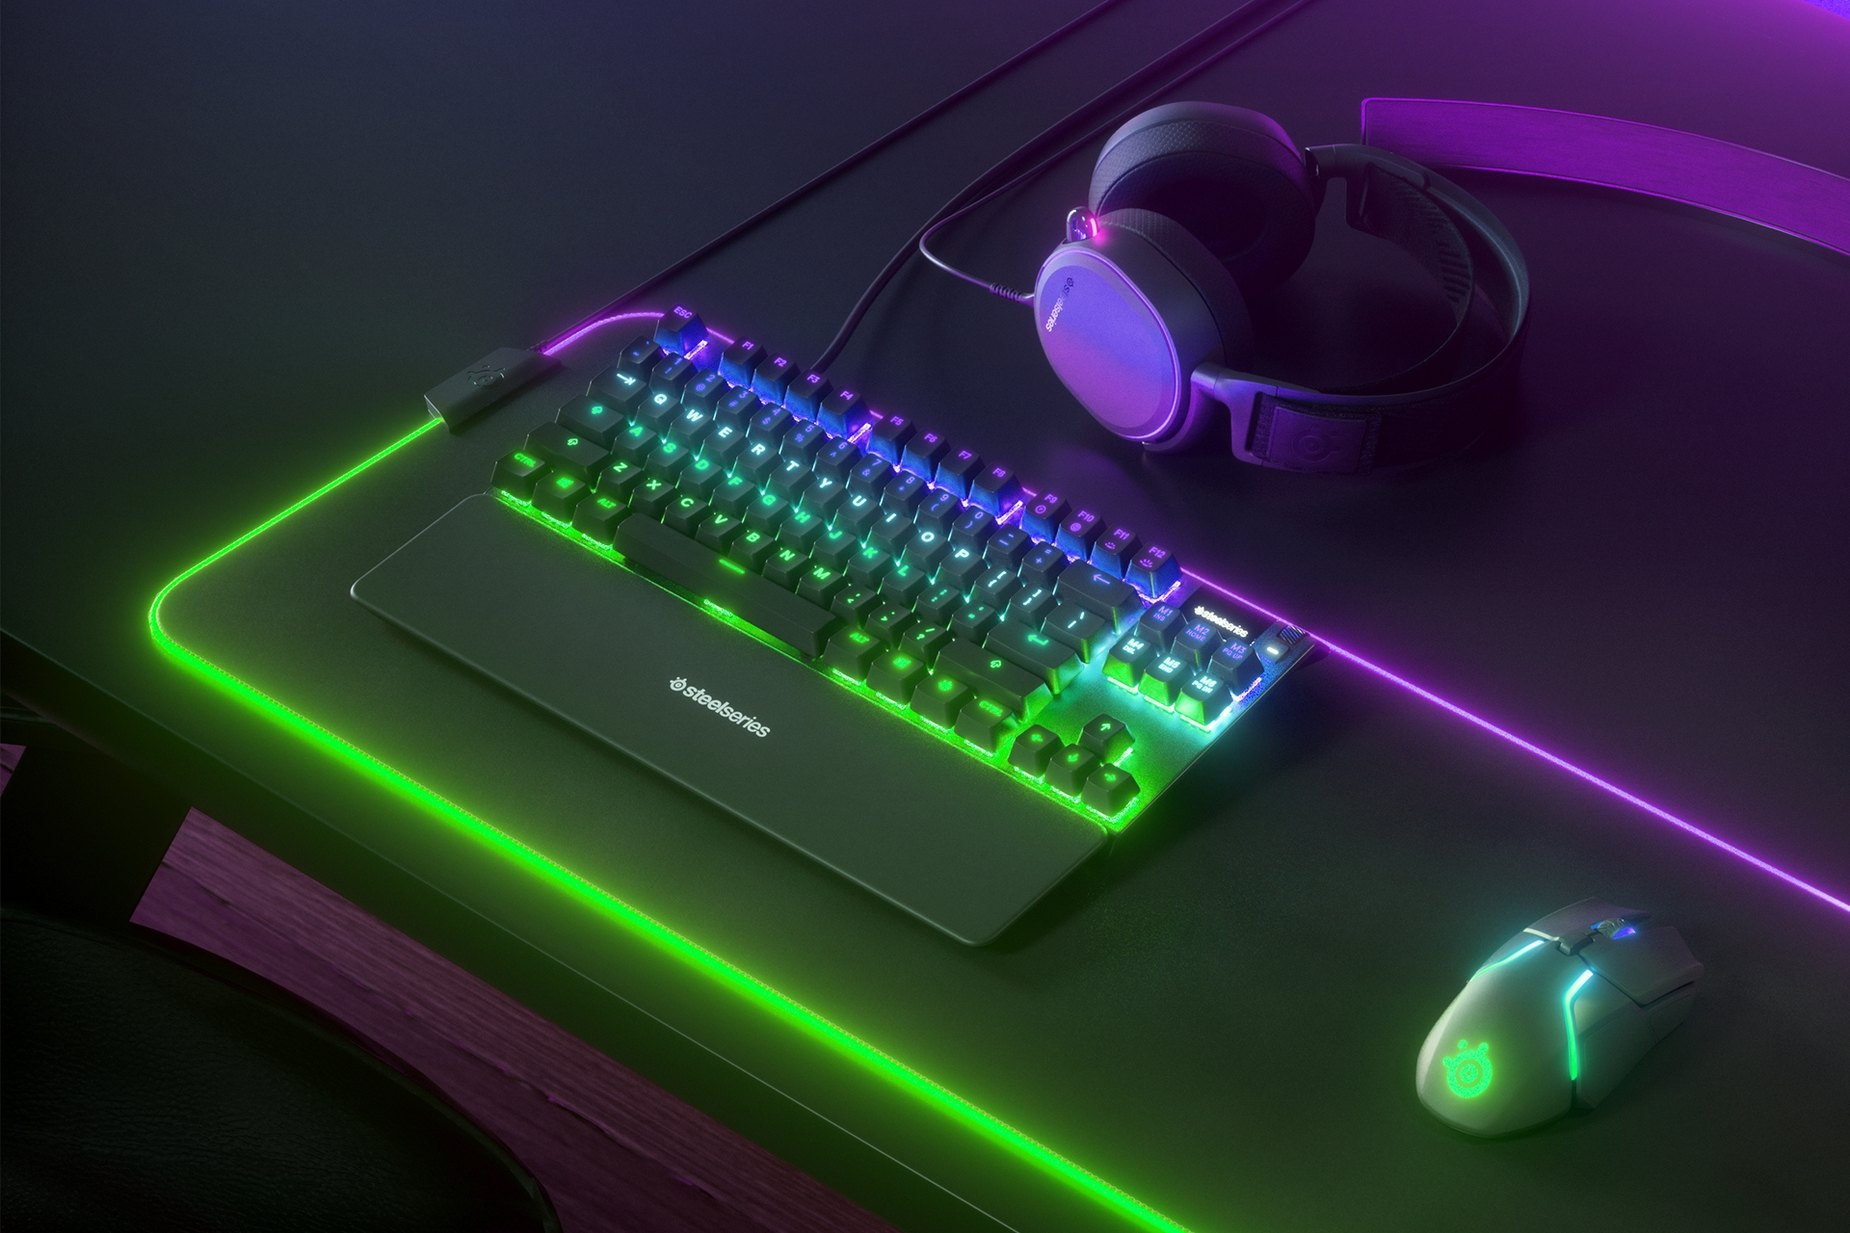 German - Apex Pro TKL gaming keyboard on a desk with a gaming mouse, both on top of a large mousepad and a SteelSeries gaming headset next to them